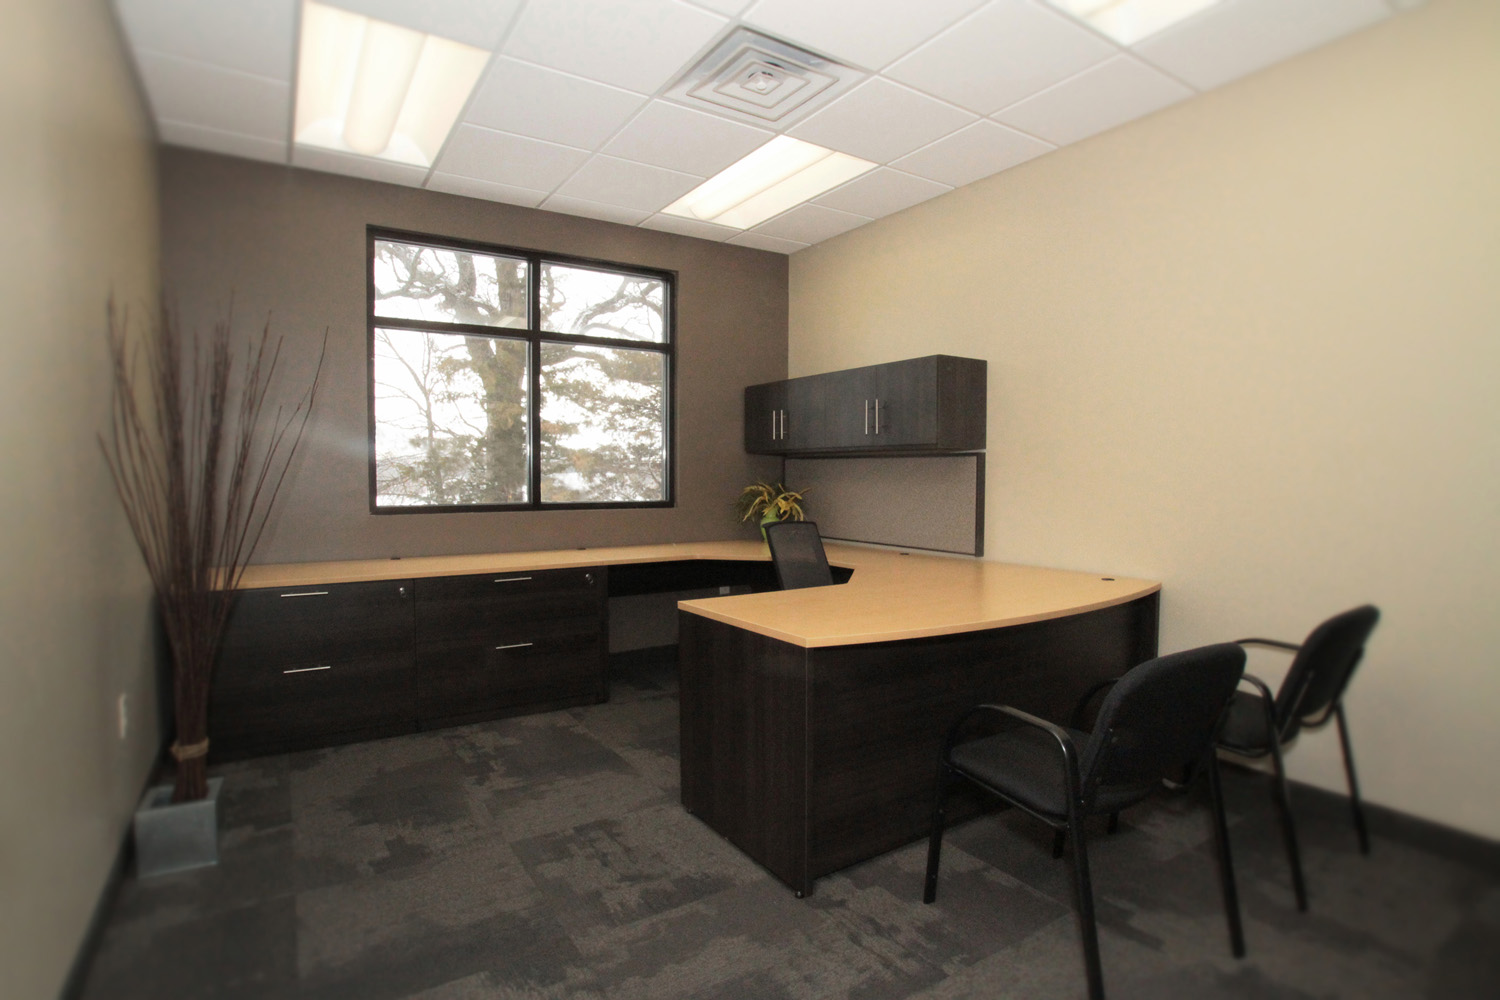 Office space design mankato new used office for Commercial office space design ideas